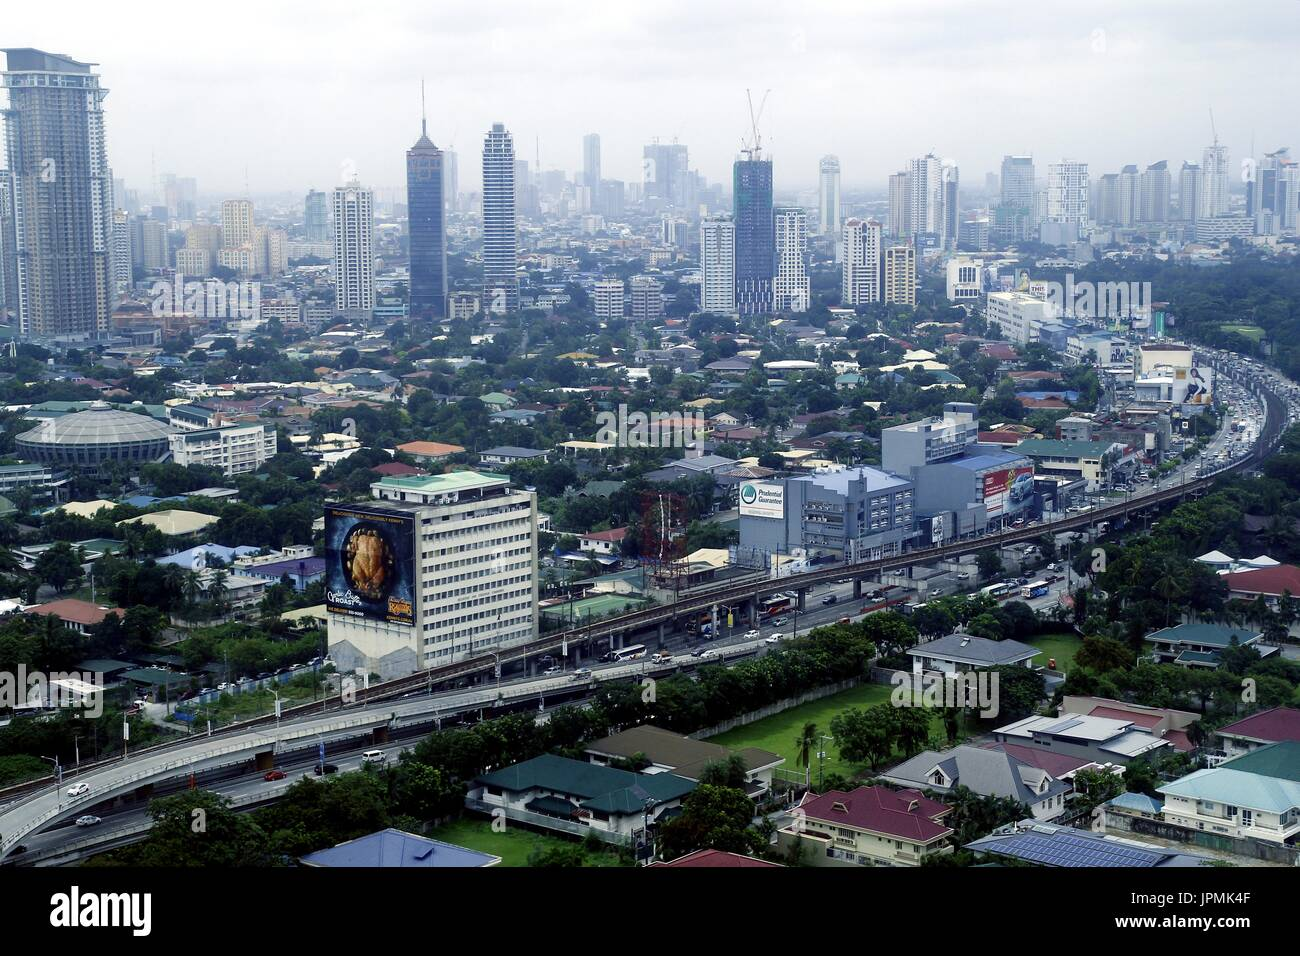 Metro manila philippines july 31 2017 aerial view of metro manila philippines july 31 2017 aerial view of residential and commercial areas and establishments in metro manila sciox Image collections